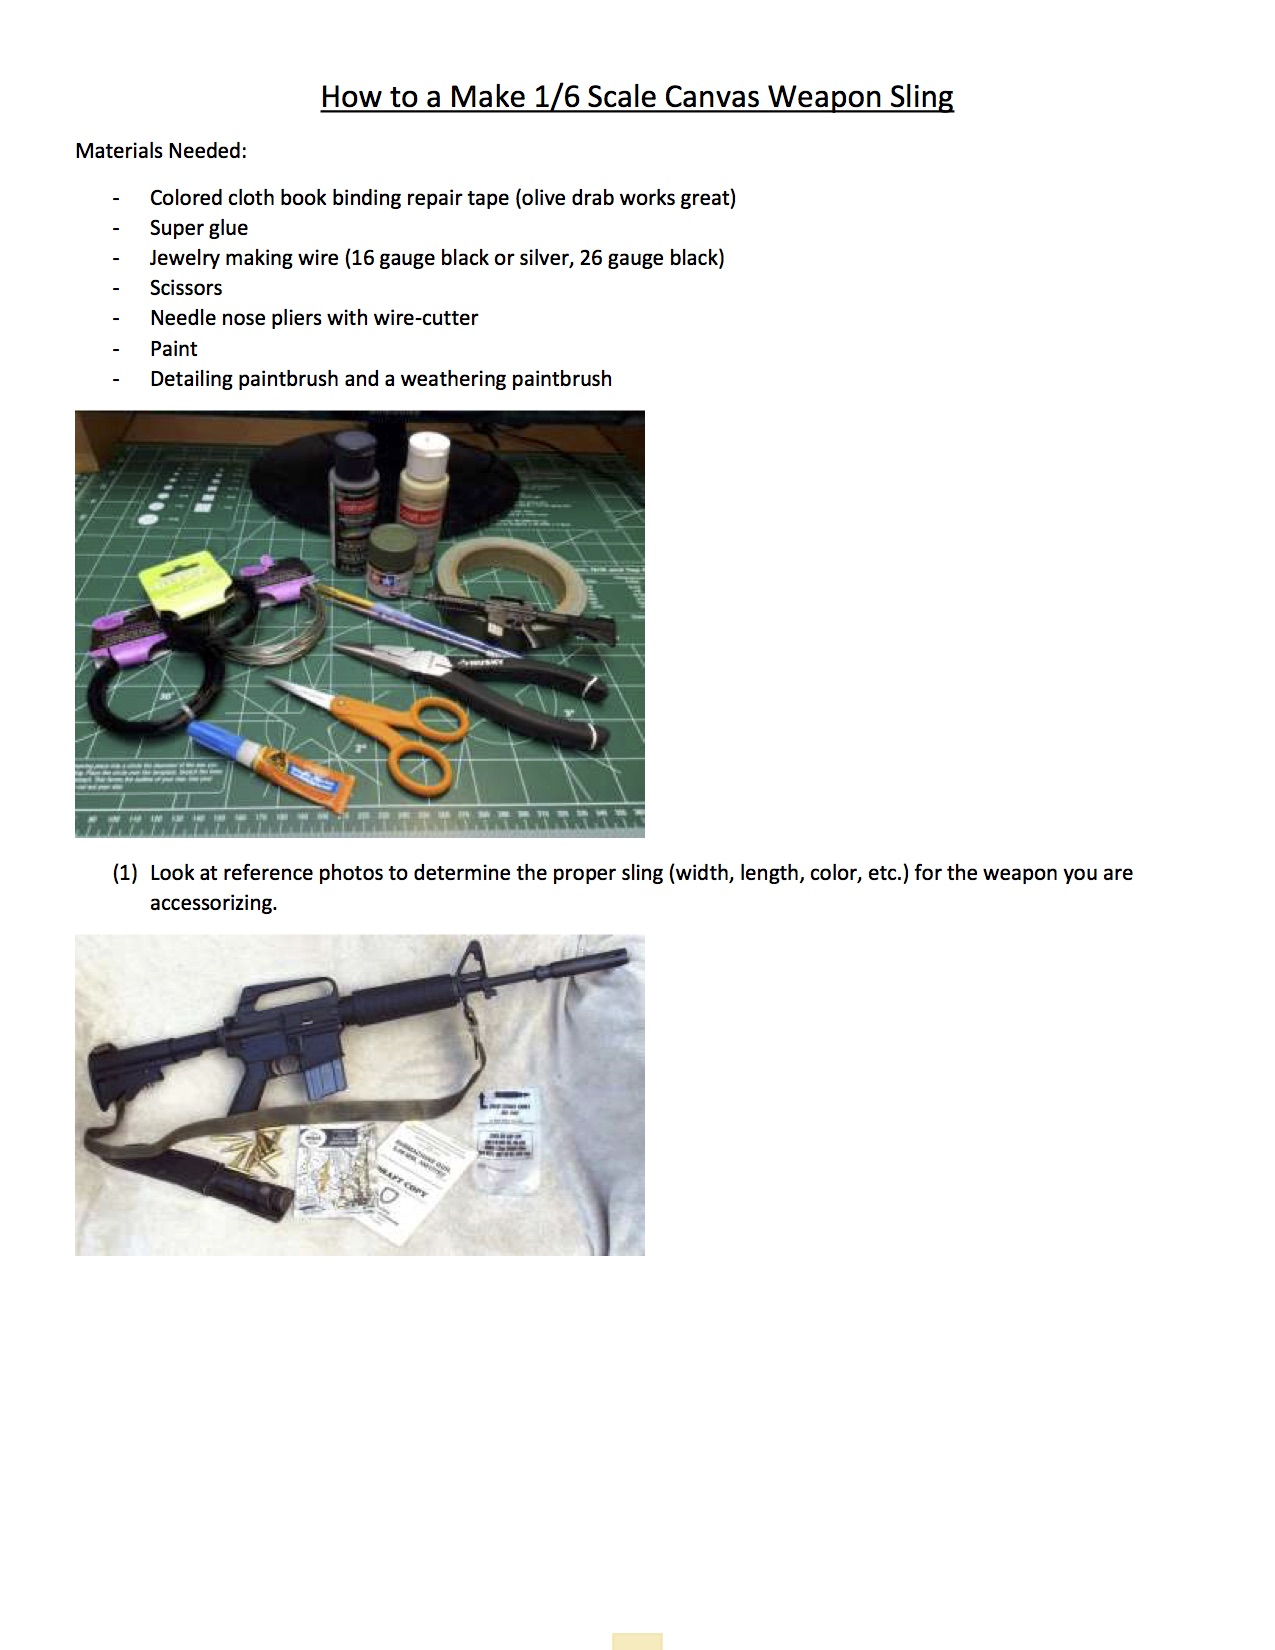 Pump Shotgun And Sling Working Action 21st Century Toys 1//6 Scale Weapon Gi Joe